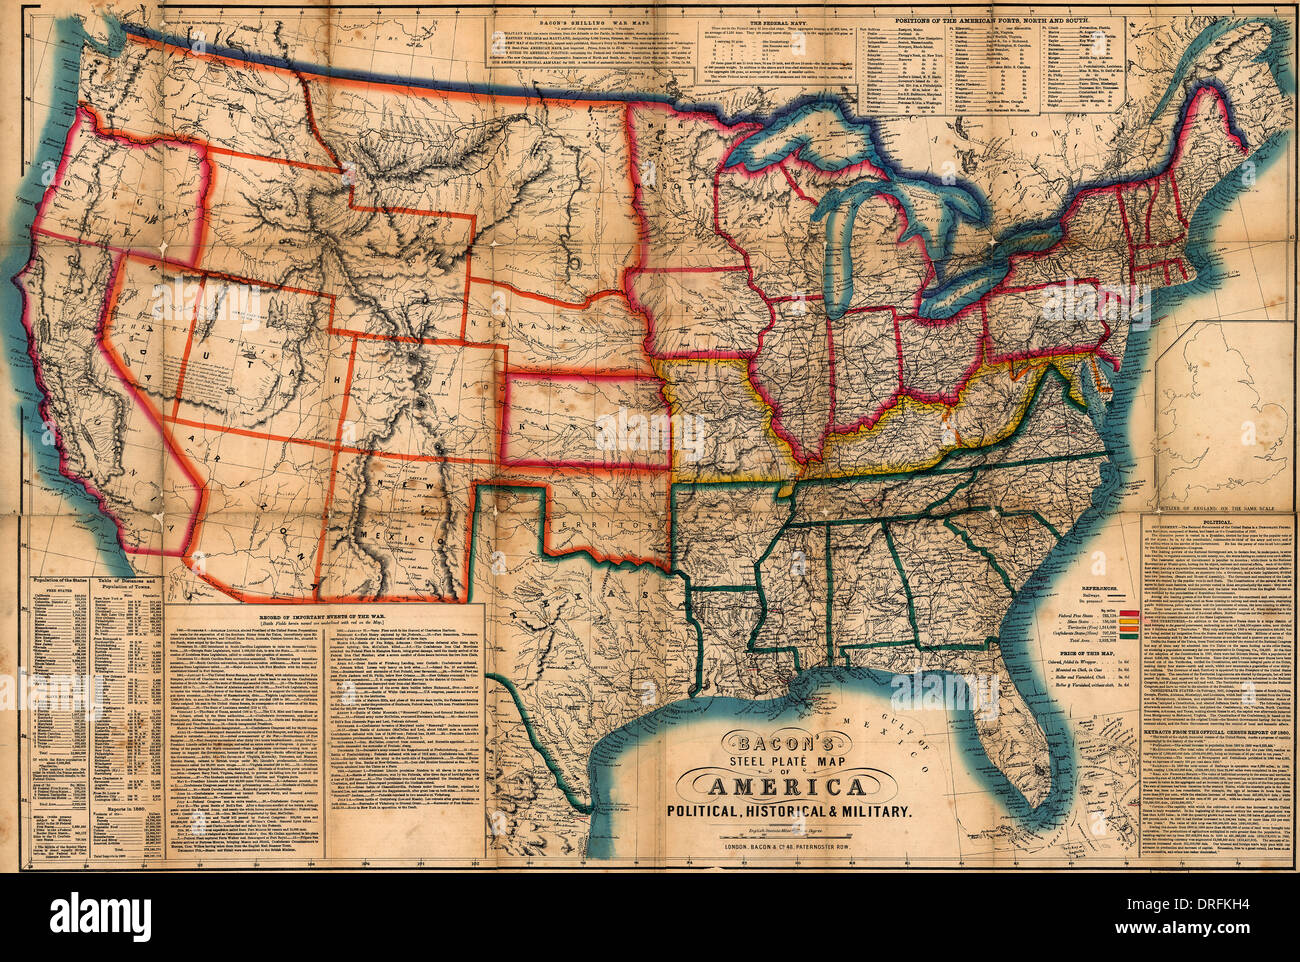 Bacon's steel plate map of America, political, historical & military on